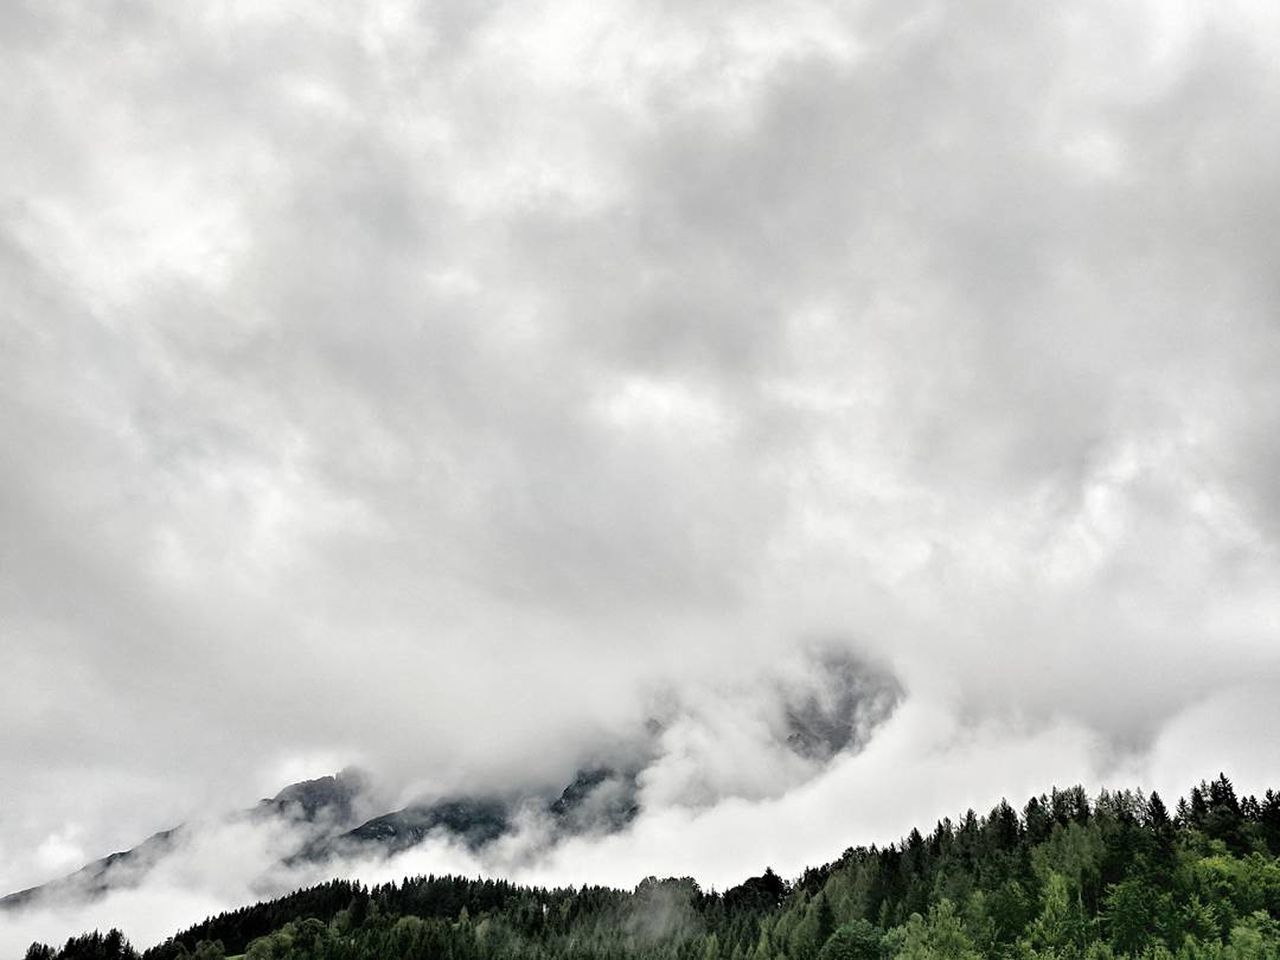 tree, sky, nature, cloud - sky, forest, scenics, beauty in nature, mountain, outdoors, no people, pine tree, landscape, day